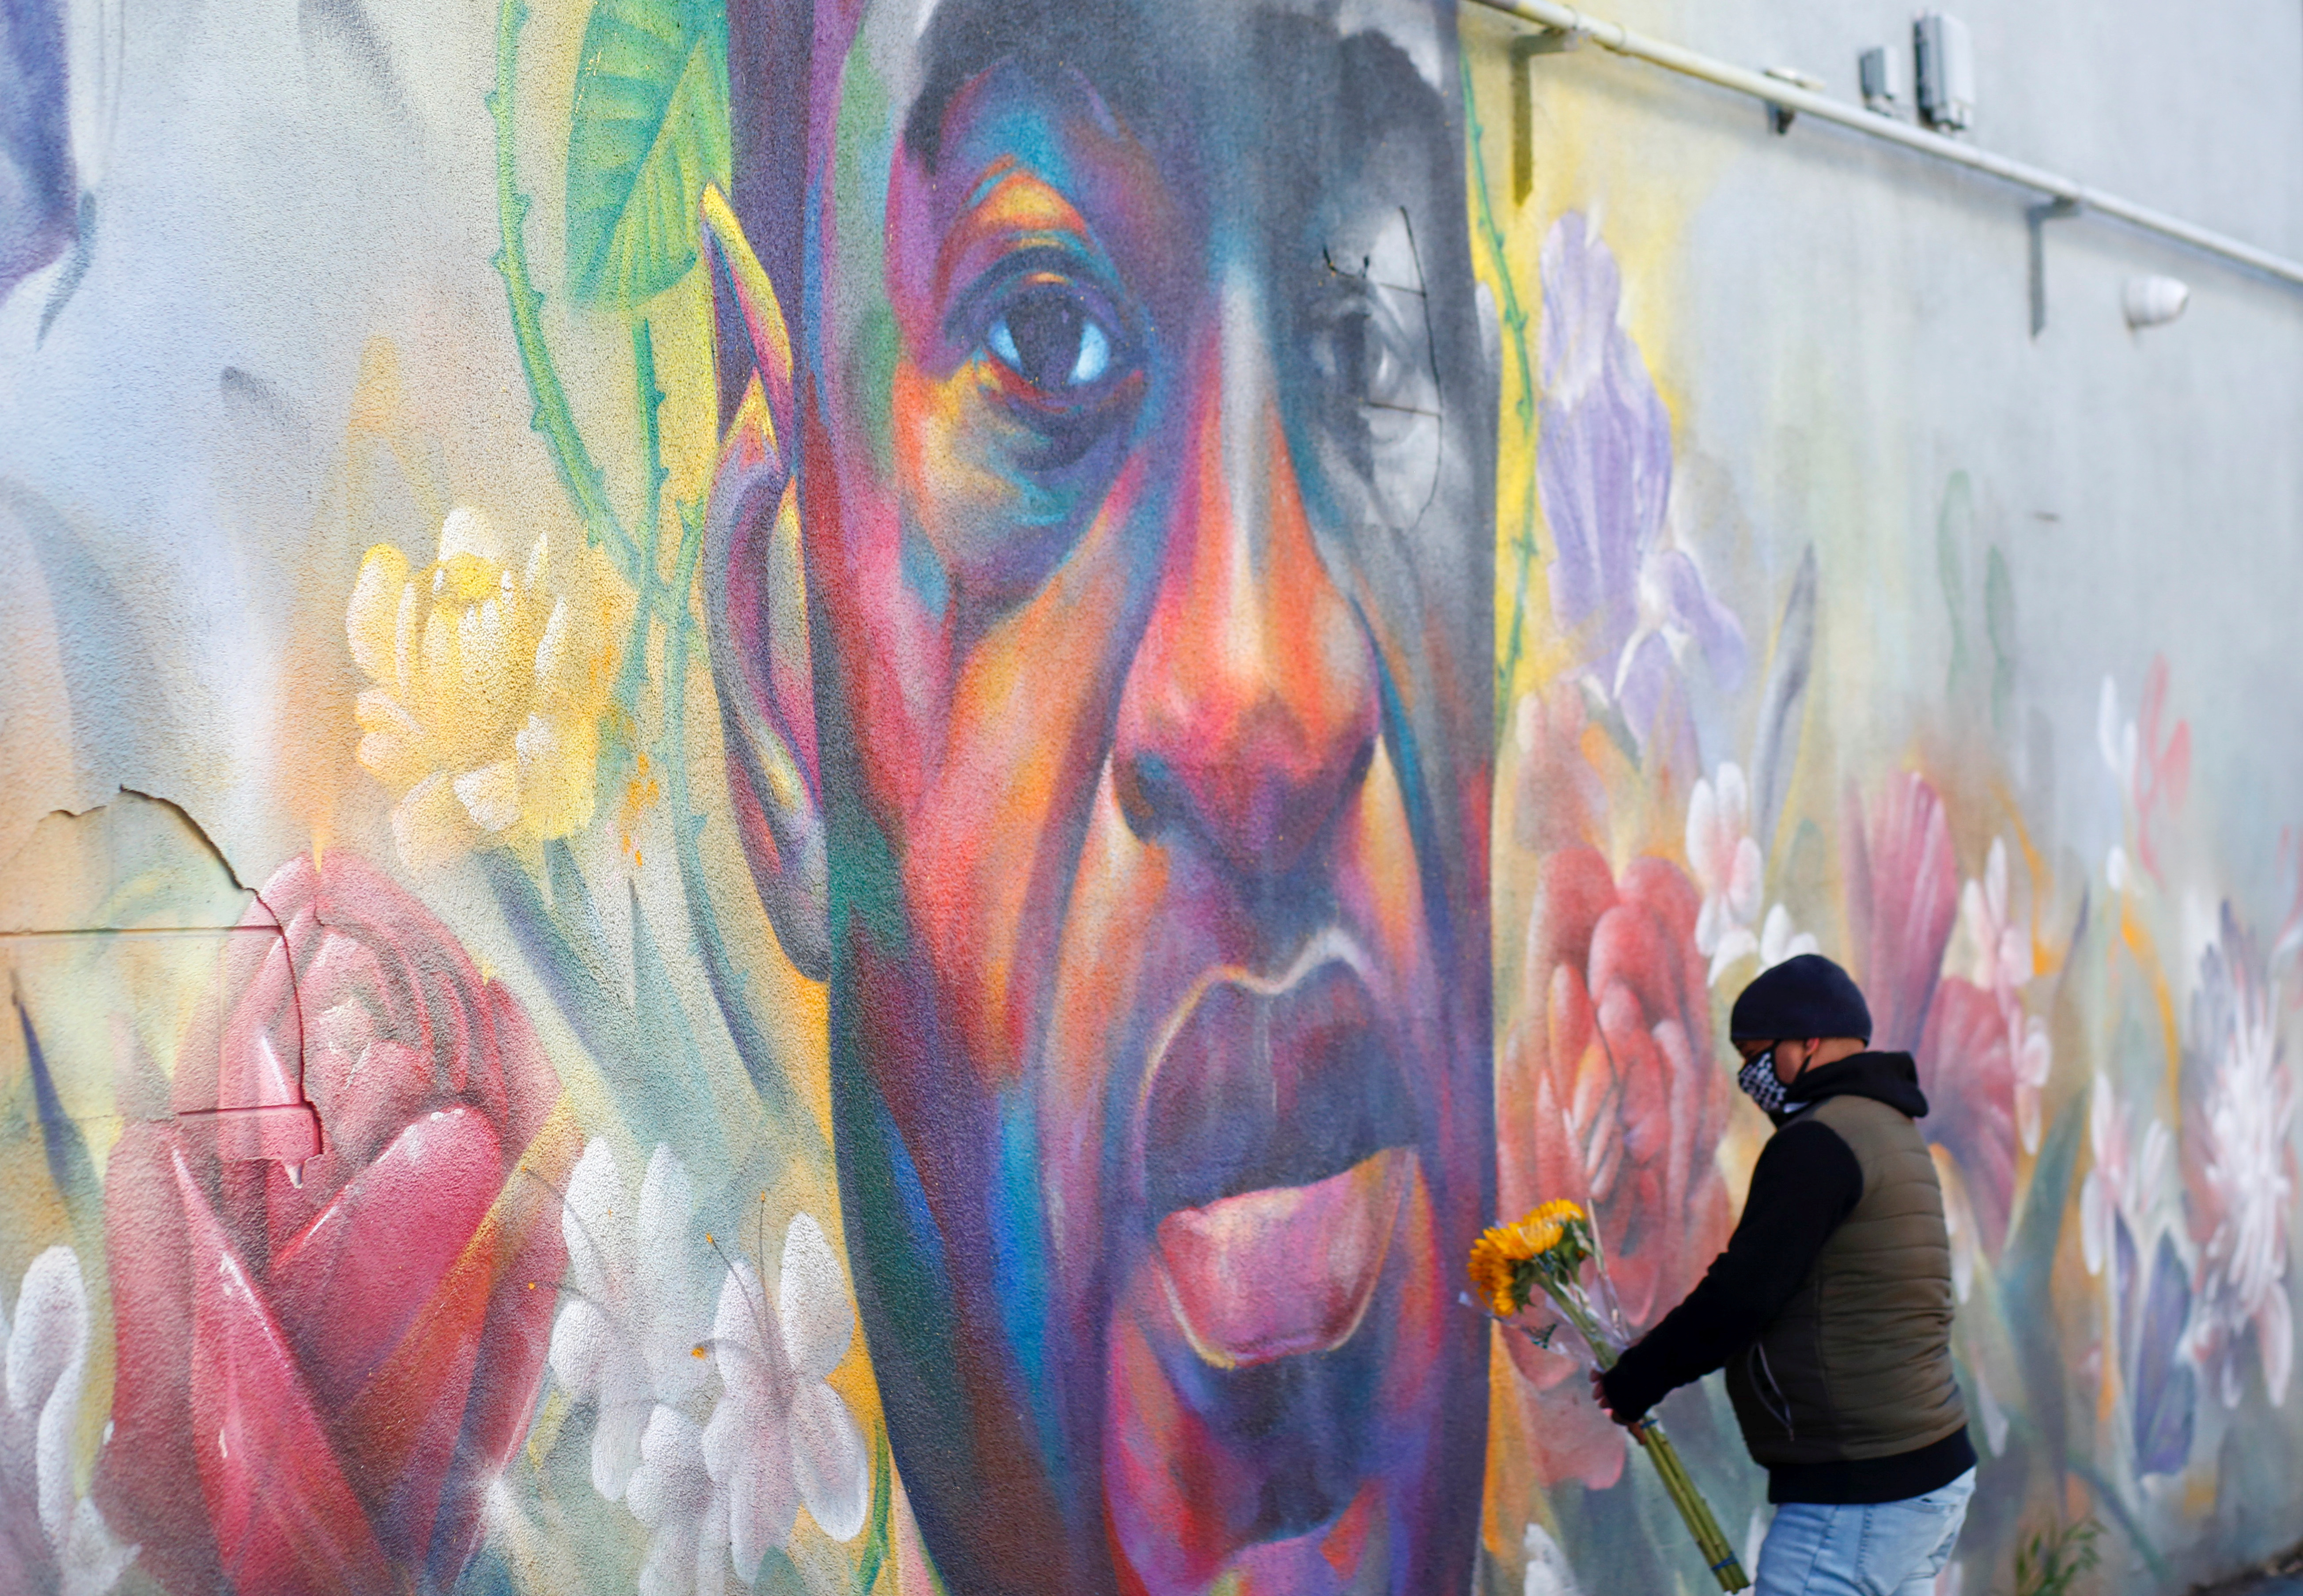 A man places flowers at a mural of George Floyd after the verdict in the trial of former Minneapolis police officer Derek Chauvin, found guilty of the death of Floyd, in Denver, Colorado, U.S., April 20, 2021. REUTERS/Kevin Mohatt